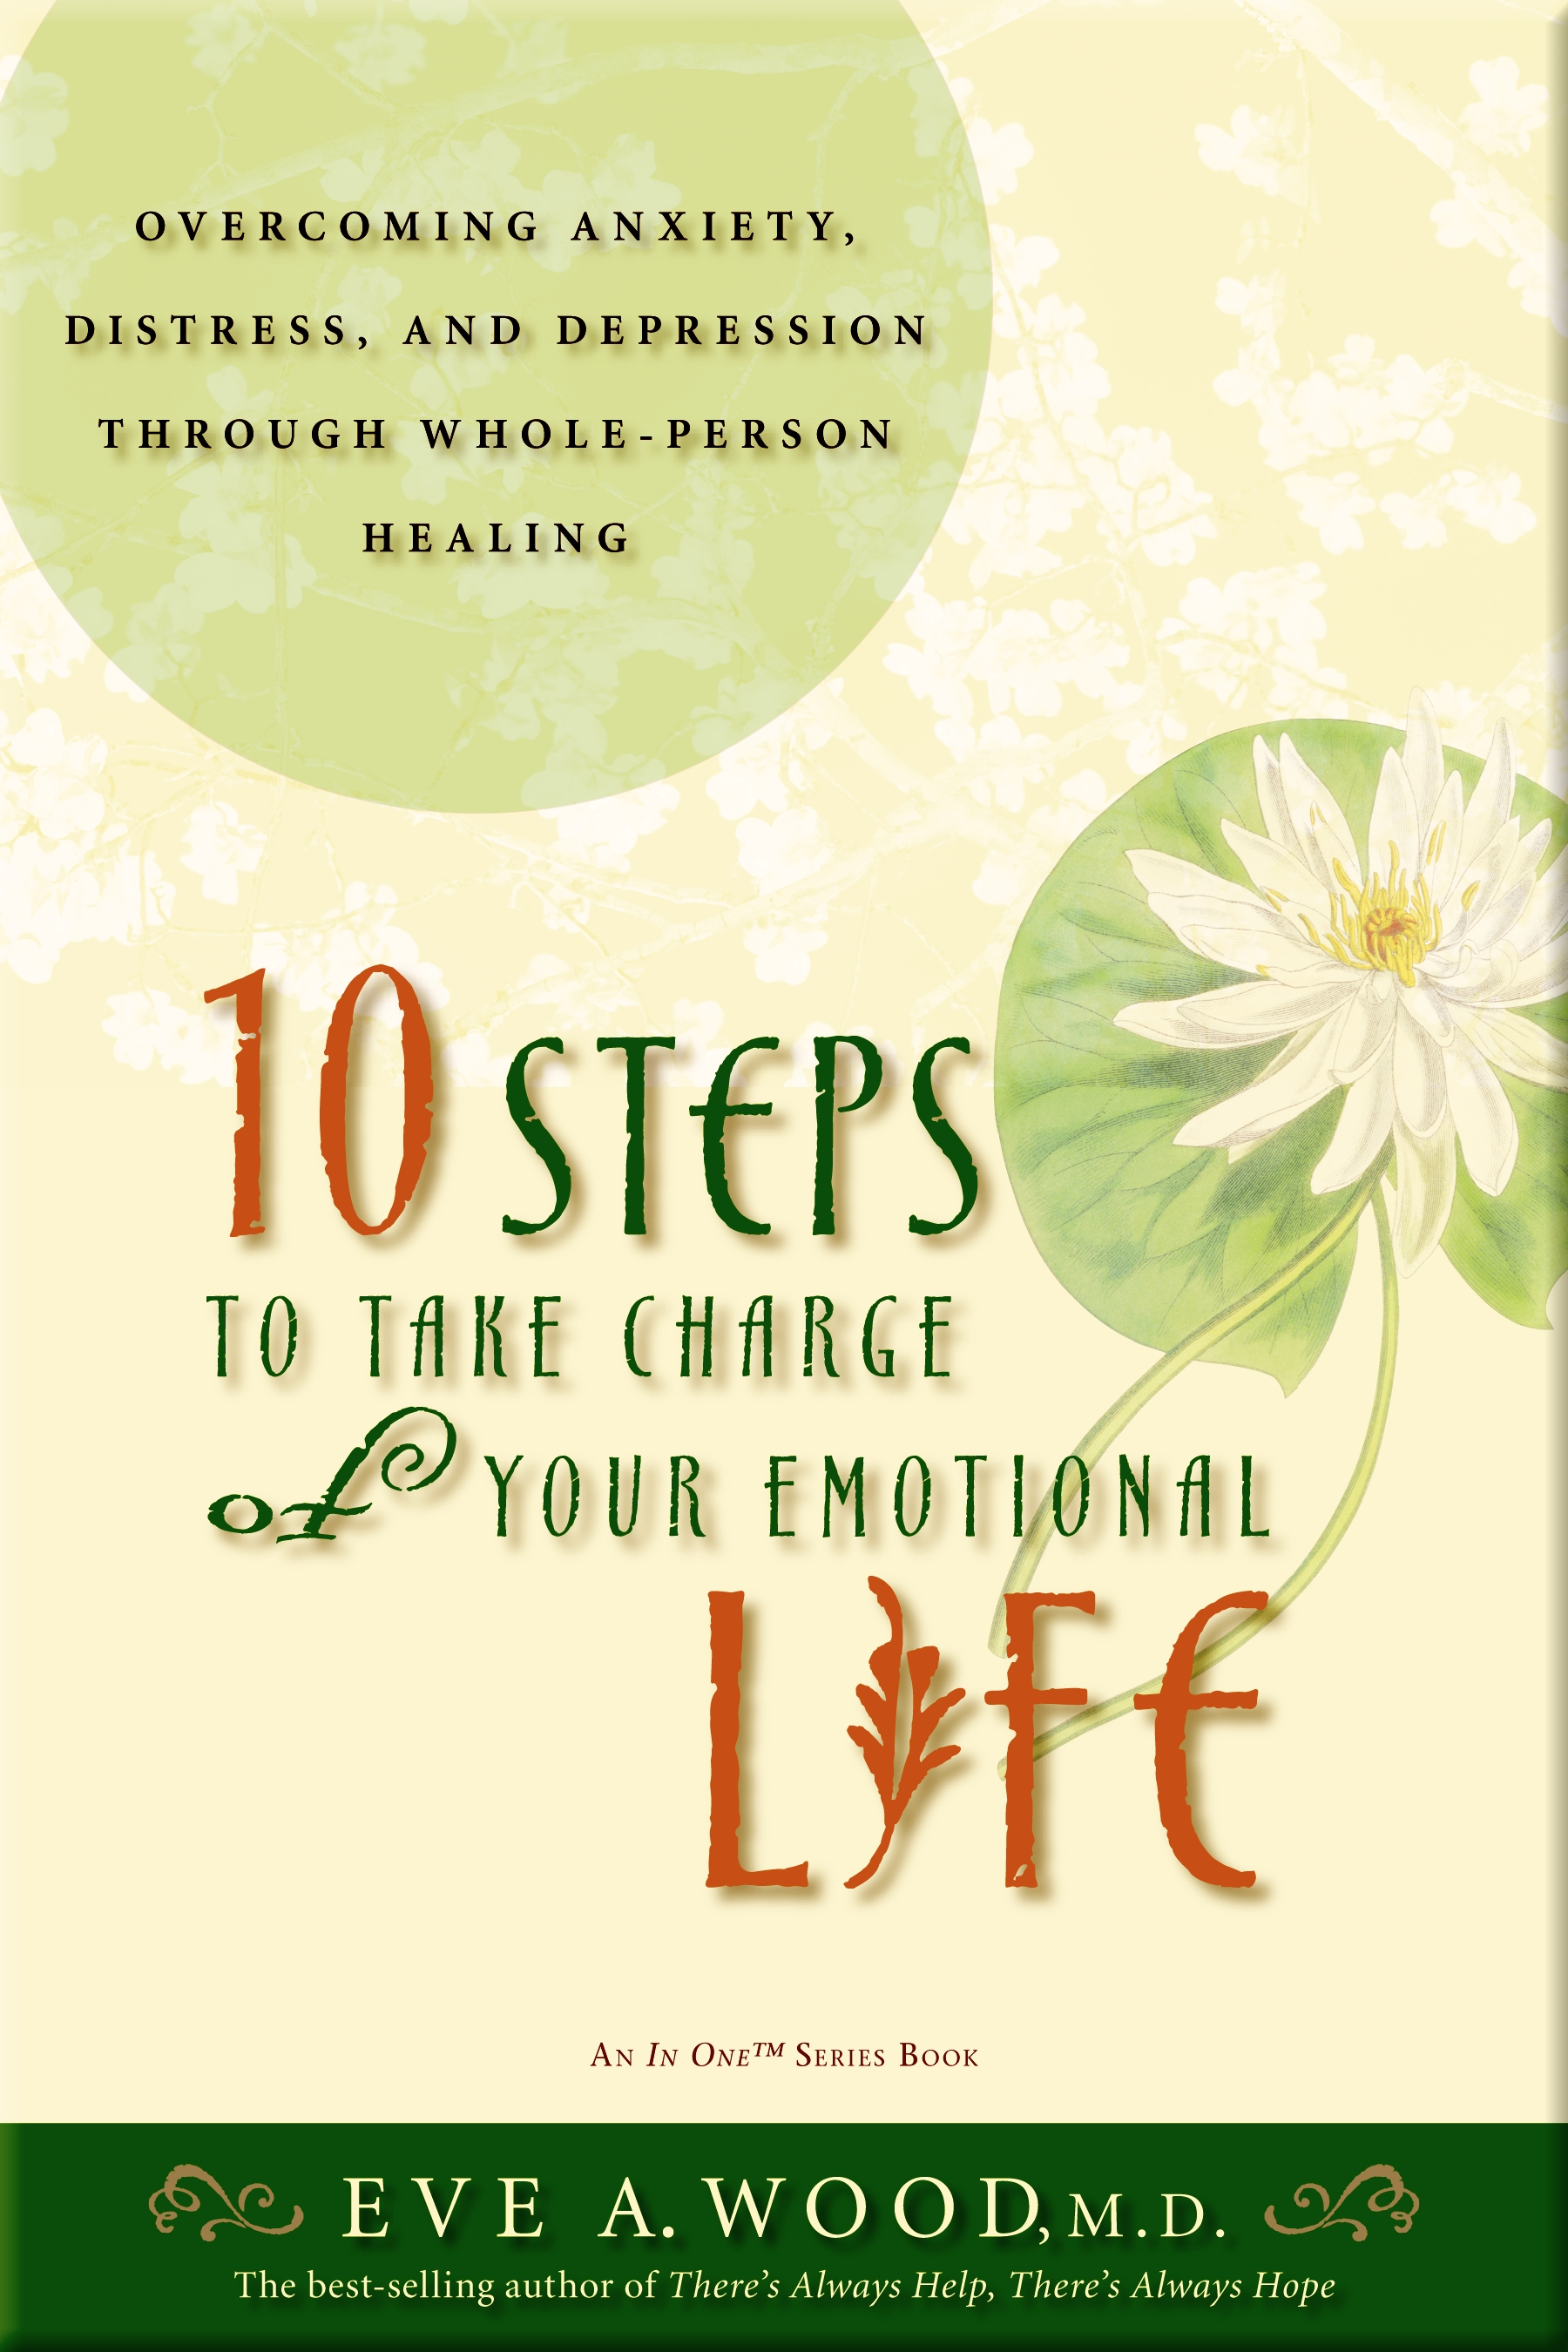 10 Steps To Take Charge Of Your Emotional Life: Overcoming Anxiety,